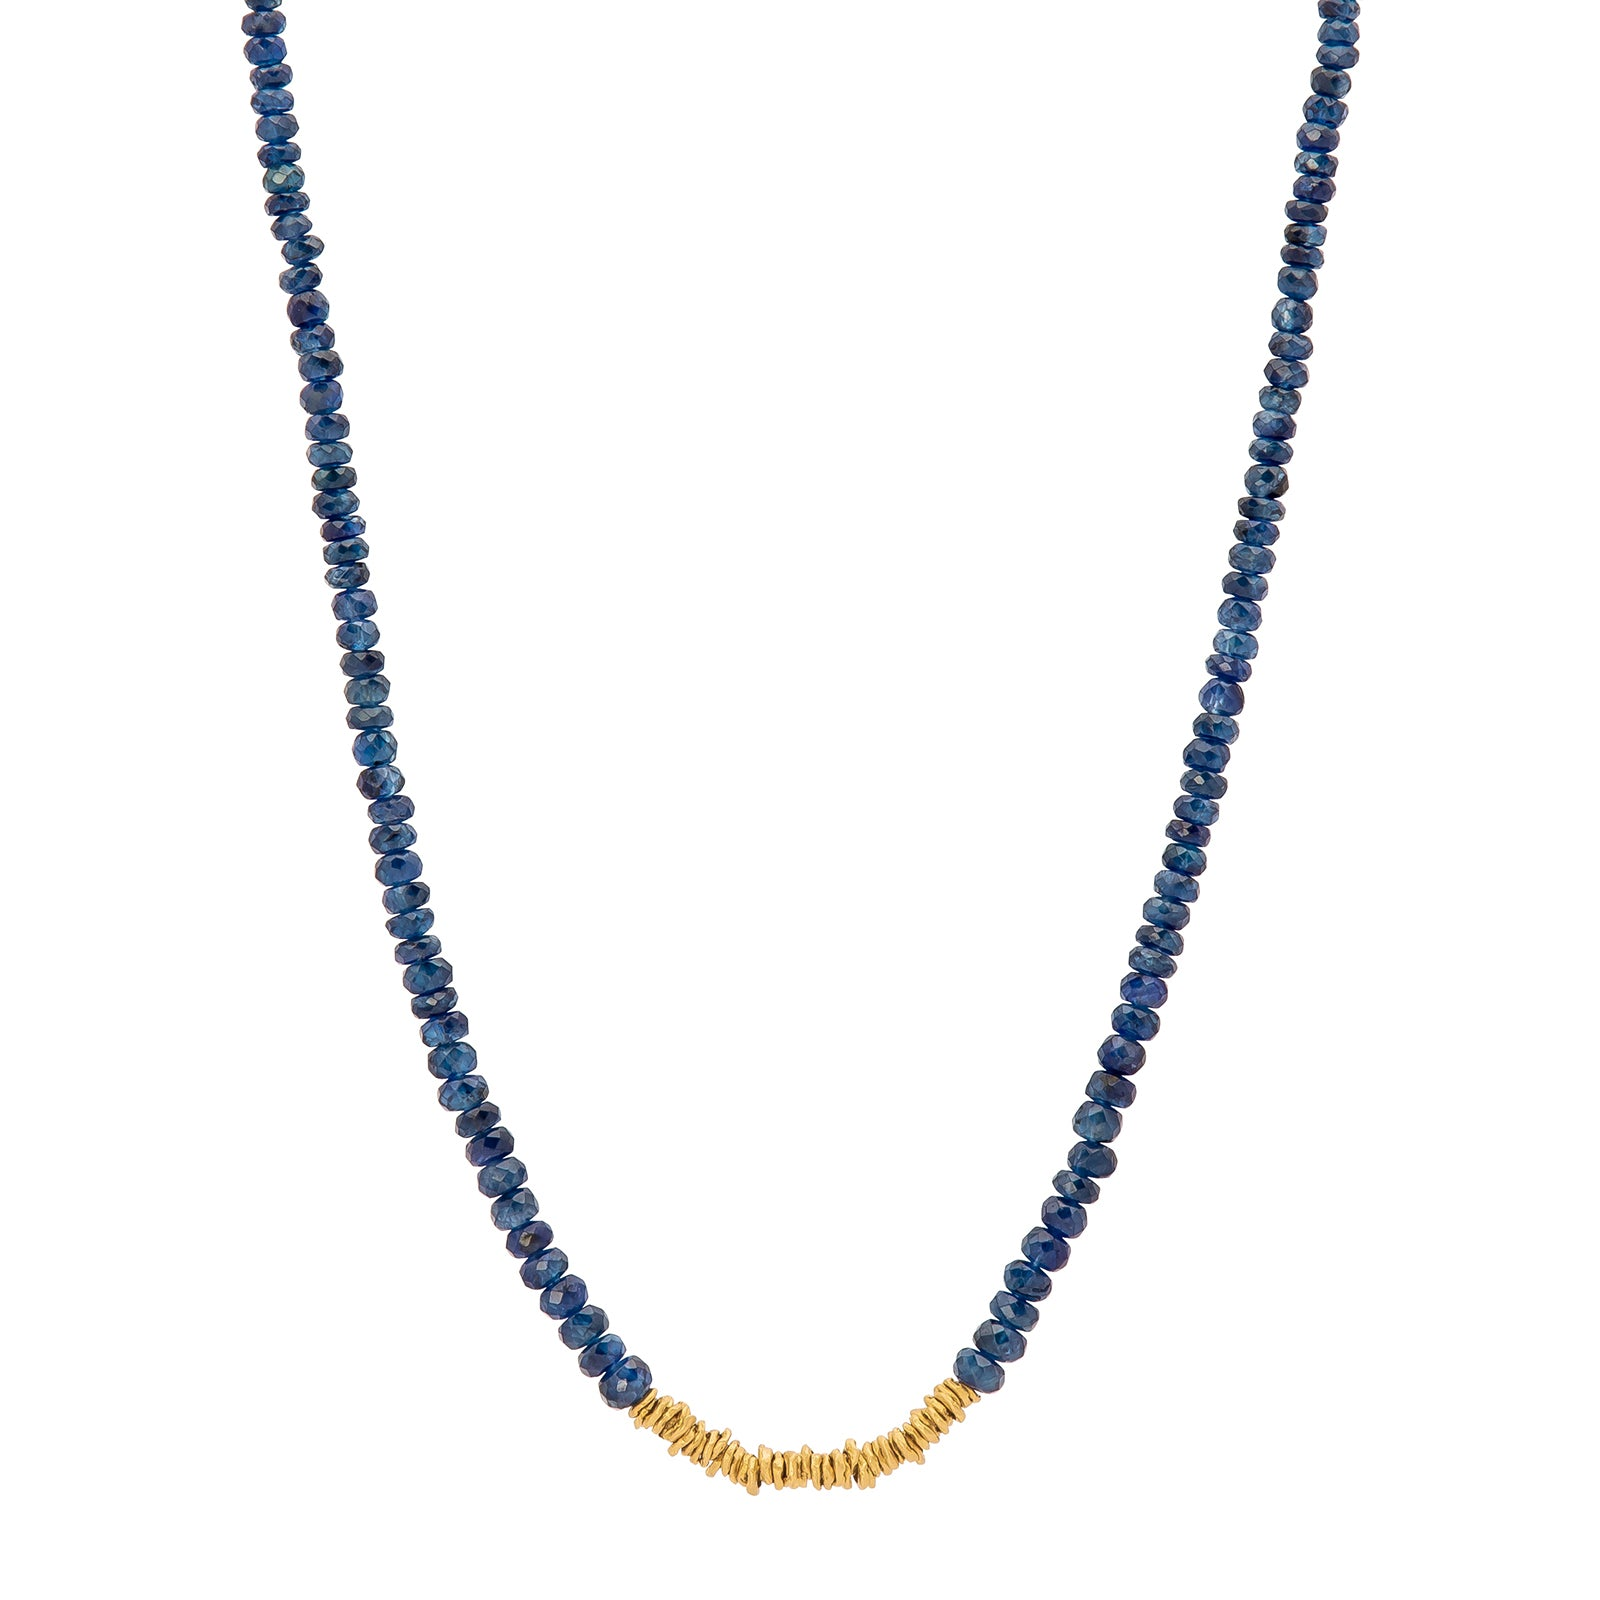 Eli Halili Bead Necklace - Blue Sapphire - Necklaces - Broken English Jewelry